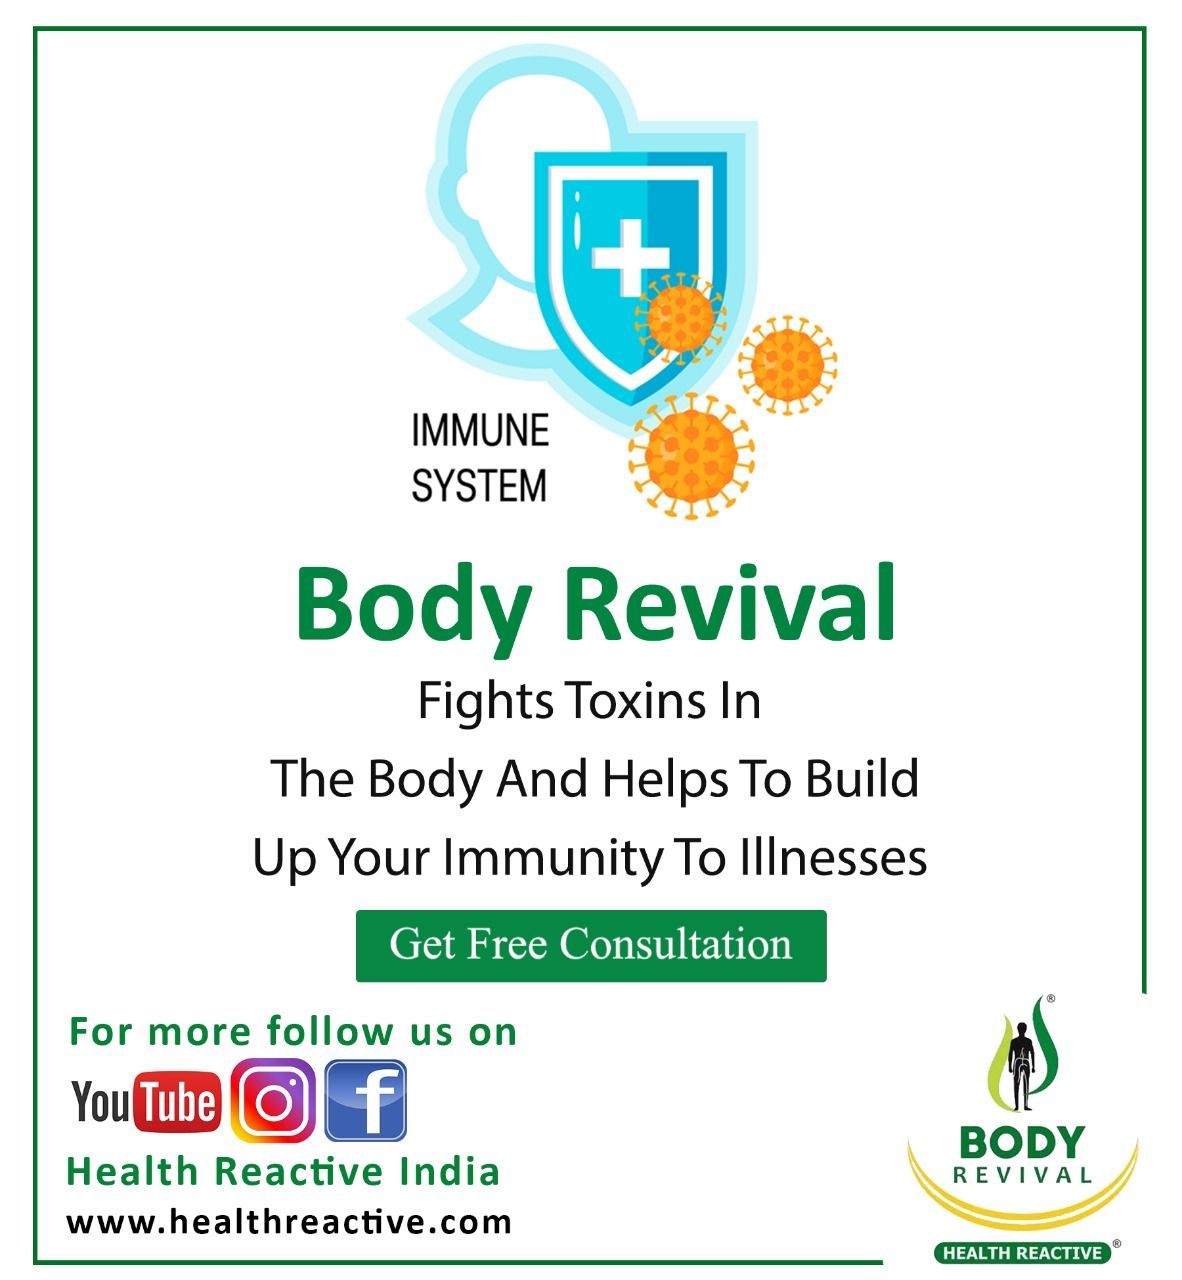 Ayurvedic treatment for cancer: Body Revival is an Ayurvedic